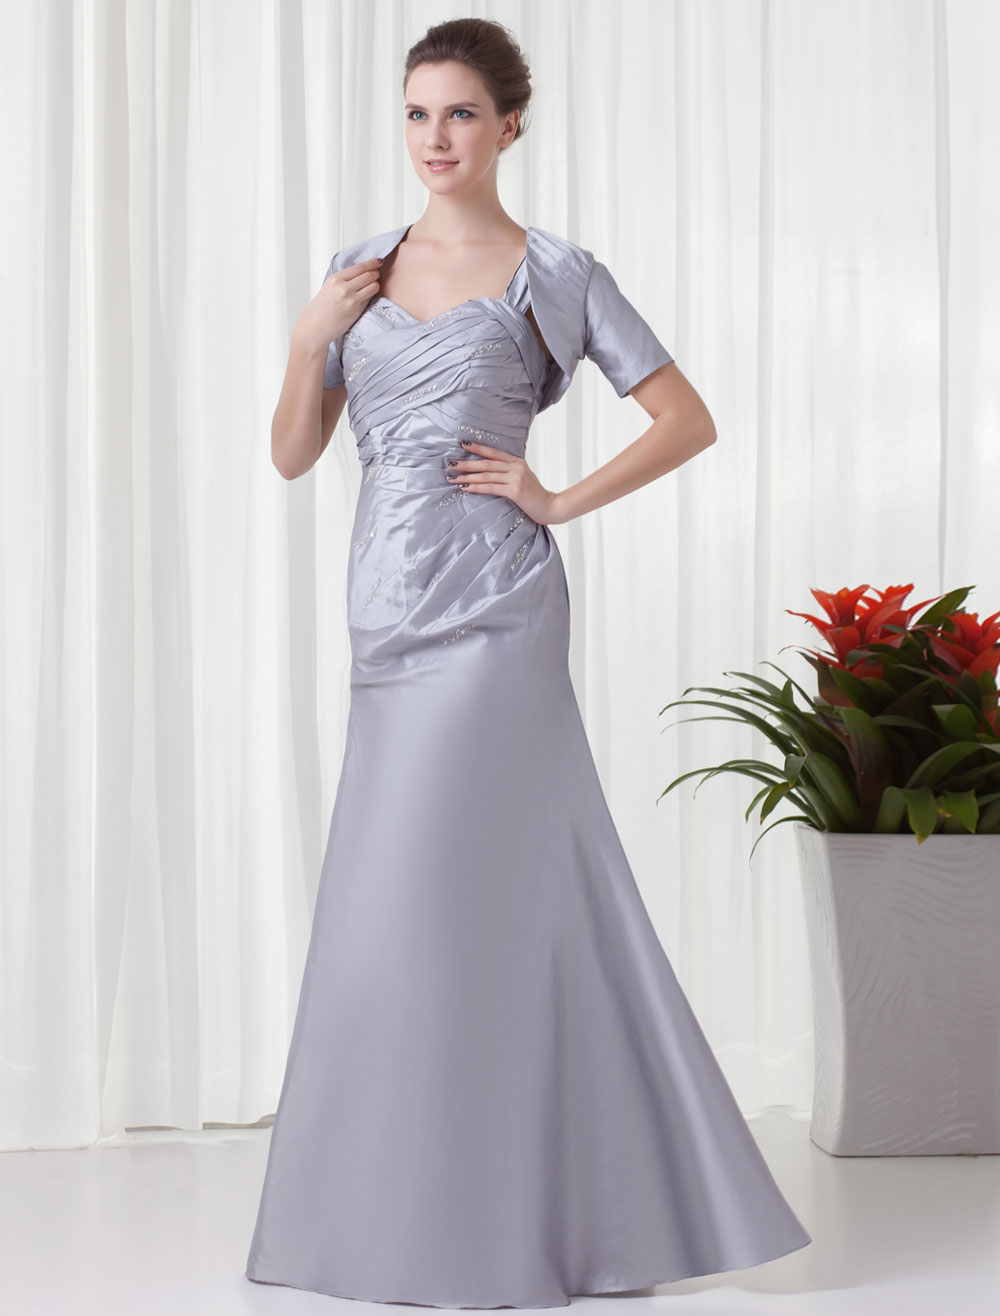 Mermaid Silver Taffeta Floor-Length Wedding Bridesmaid Dress